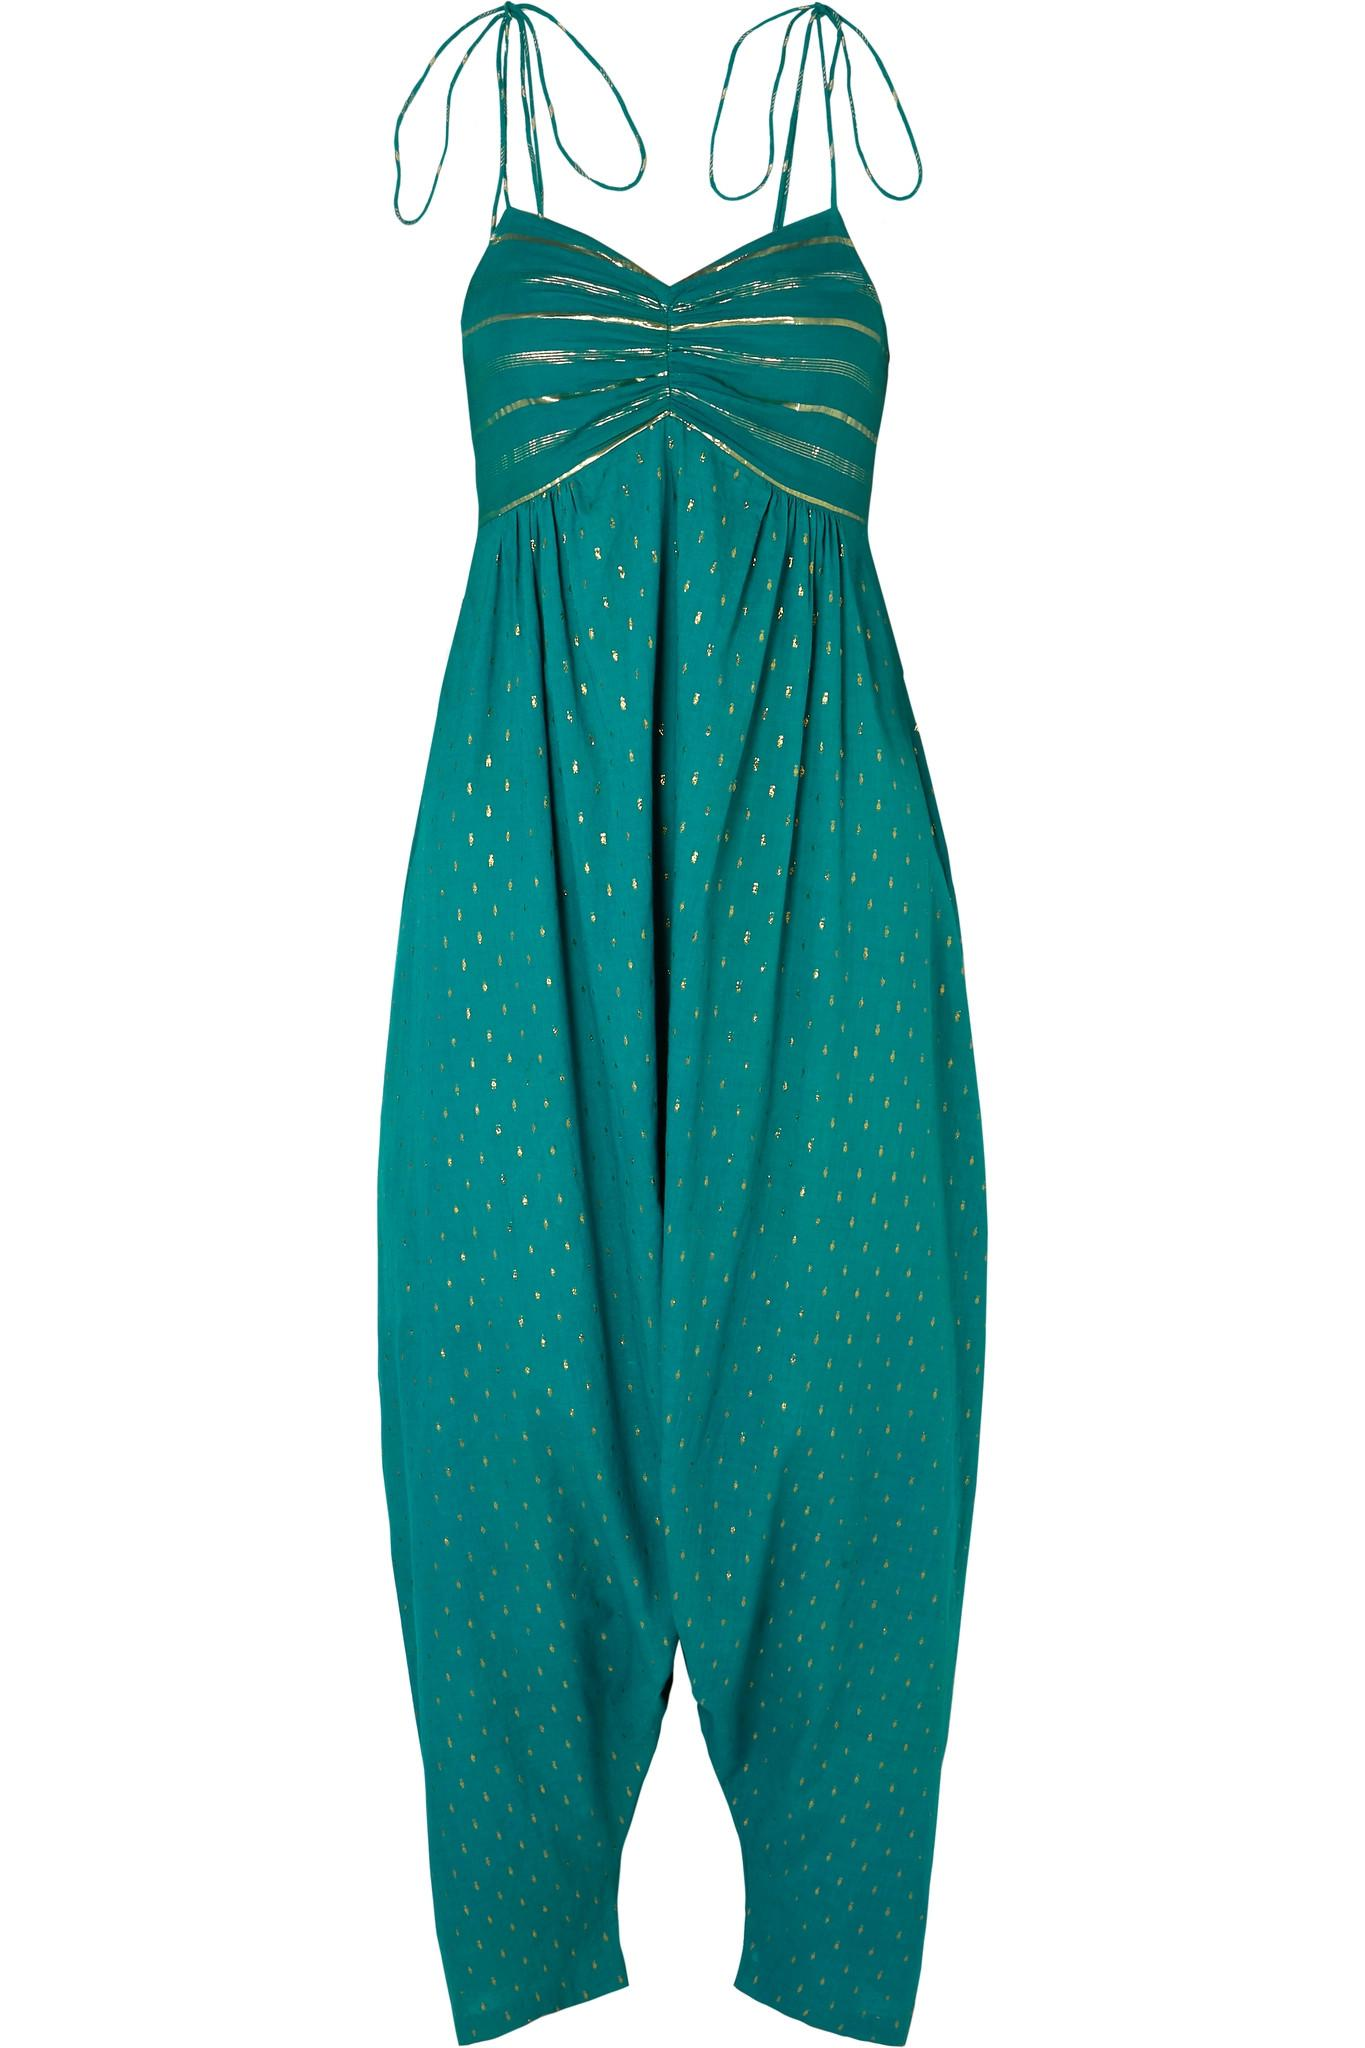 c7440b3ecc2c Miguelina. Women s Green Calla Tasseled Fil Coupé Cotton-blend Voile  Jumpsuit